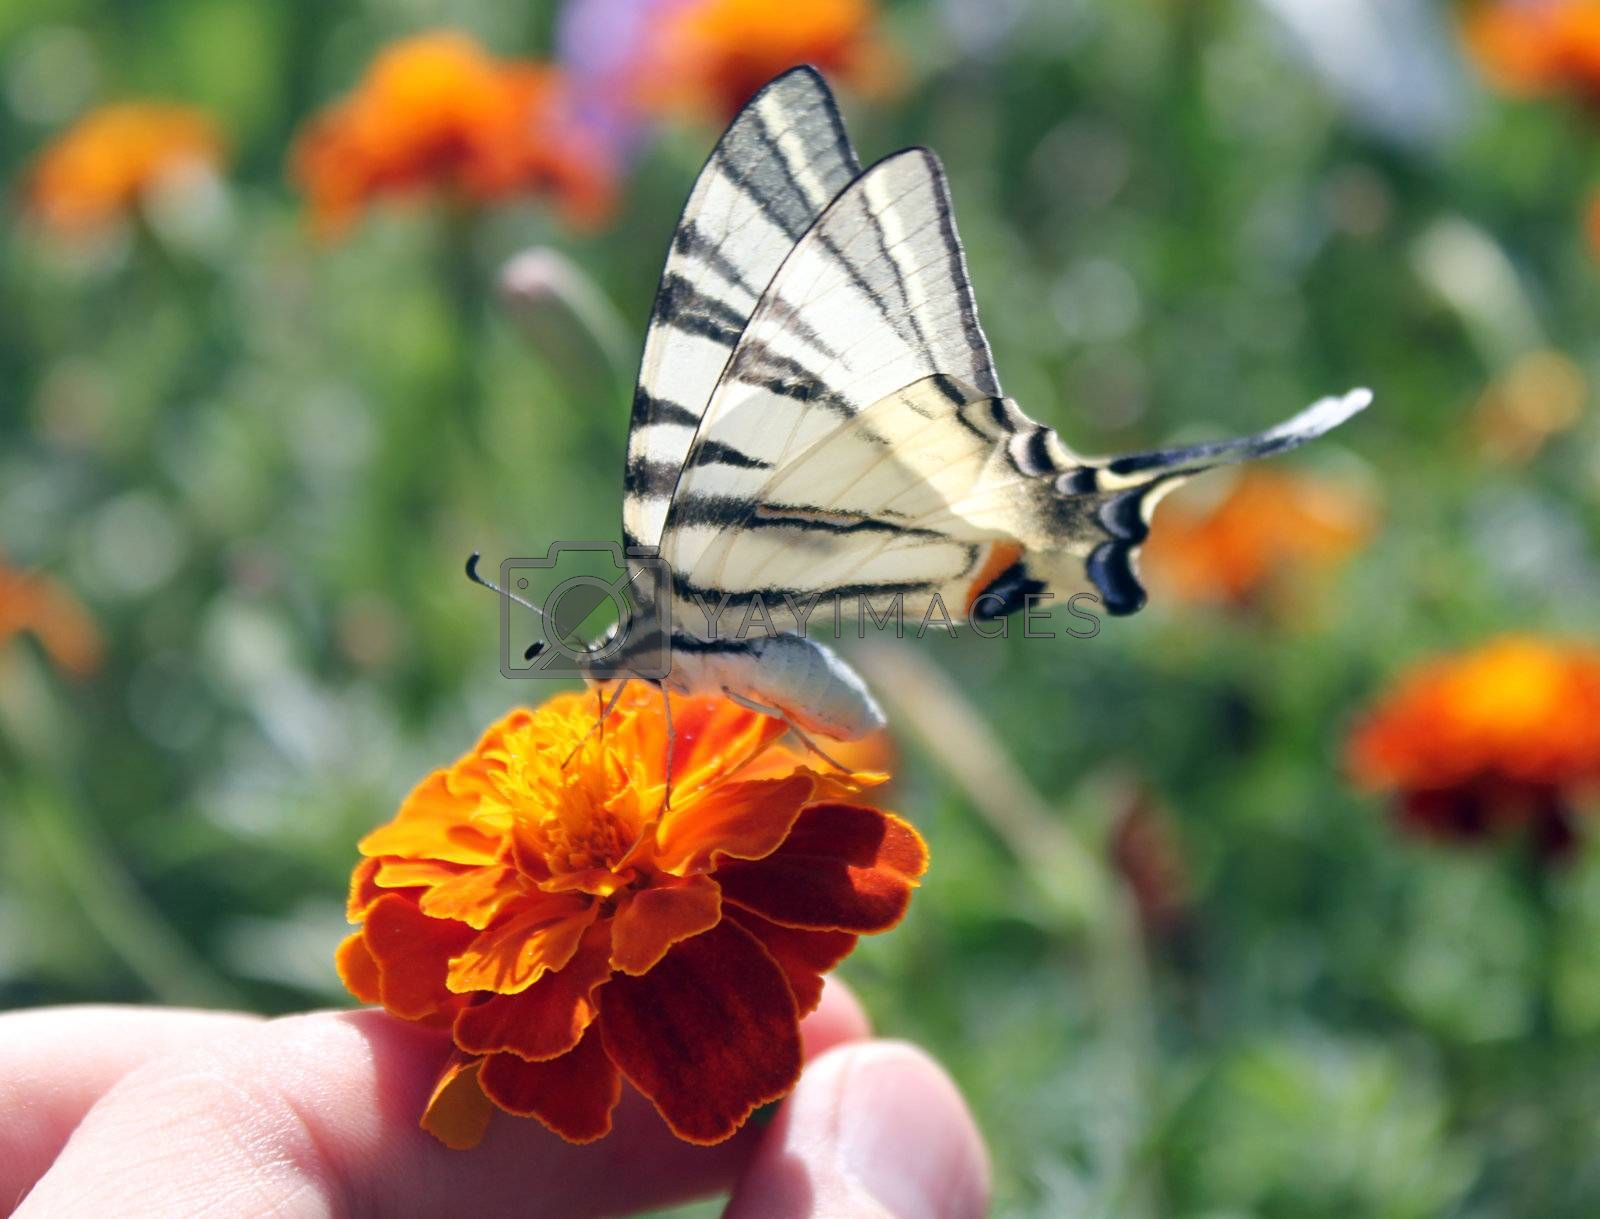 fingers holding flower with butterfly (Scarce Swallowtail)